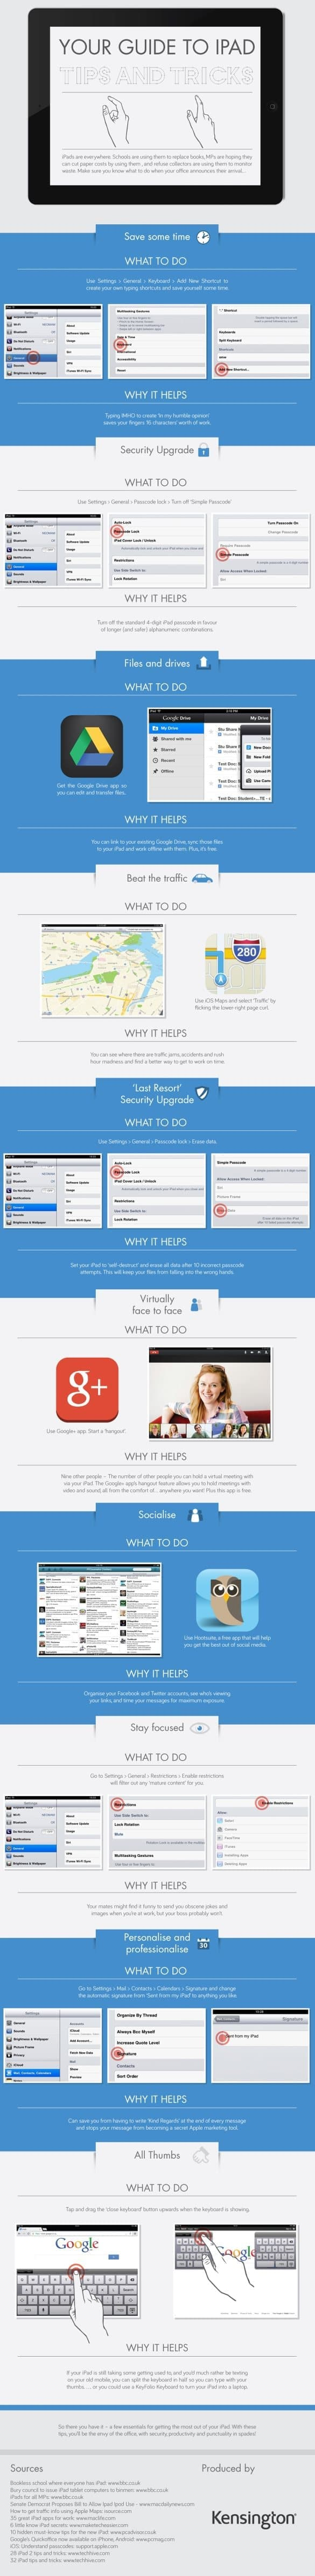 infographic image - essential tips and tricks for getting the most out of your iPad.